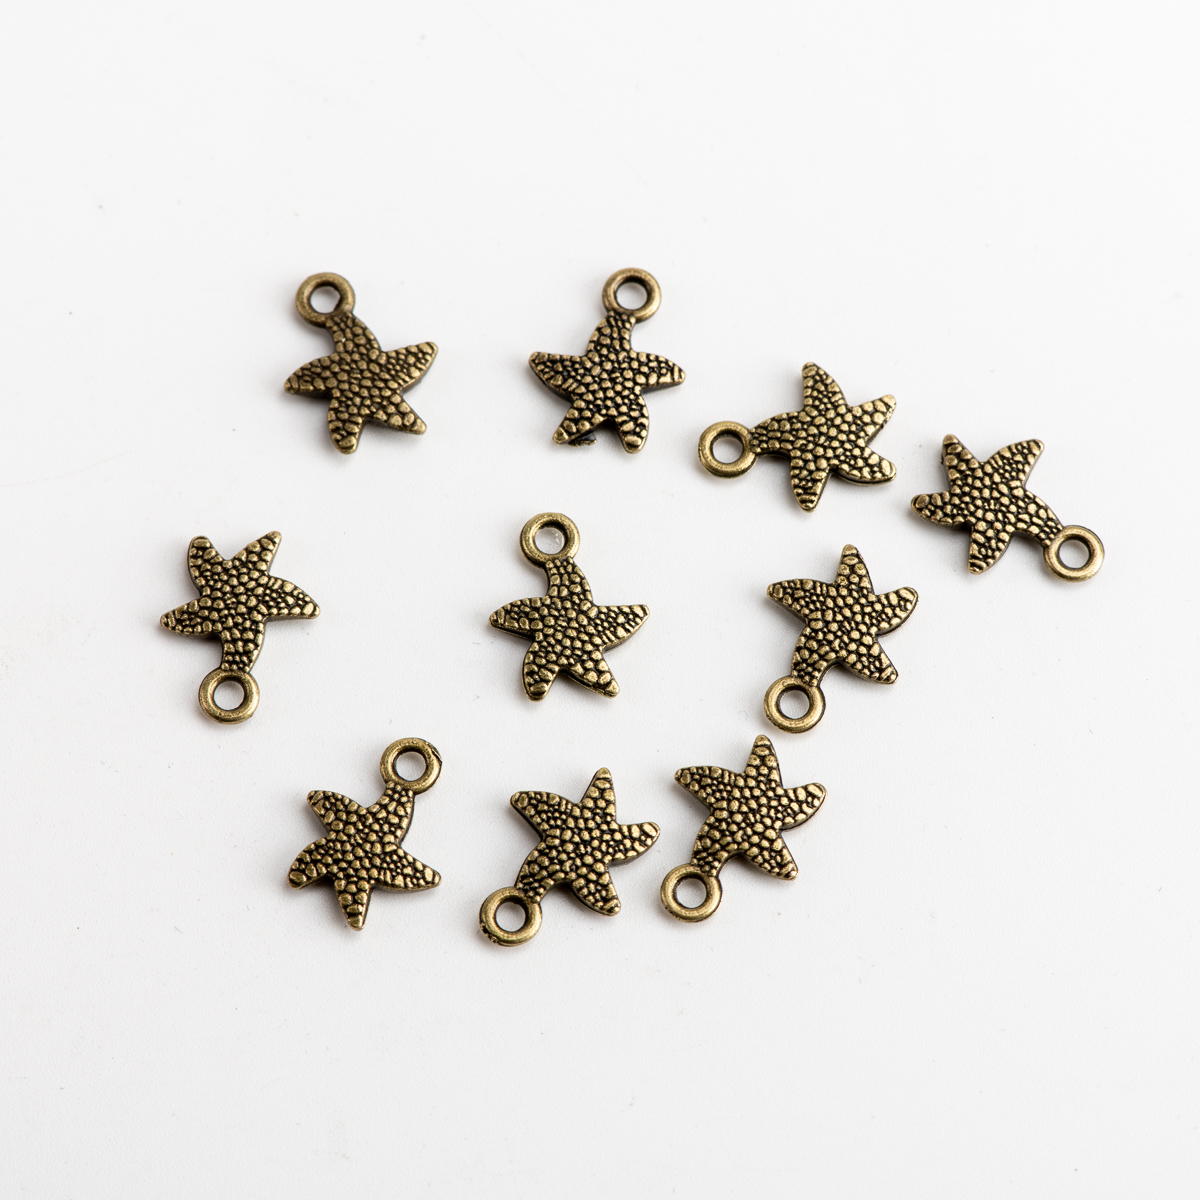 Starfish DIY Alloy Pendant Jewelry Findings Charms Jewelry Findings & Components For Jewelry Making #JZ508